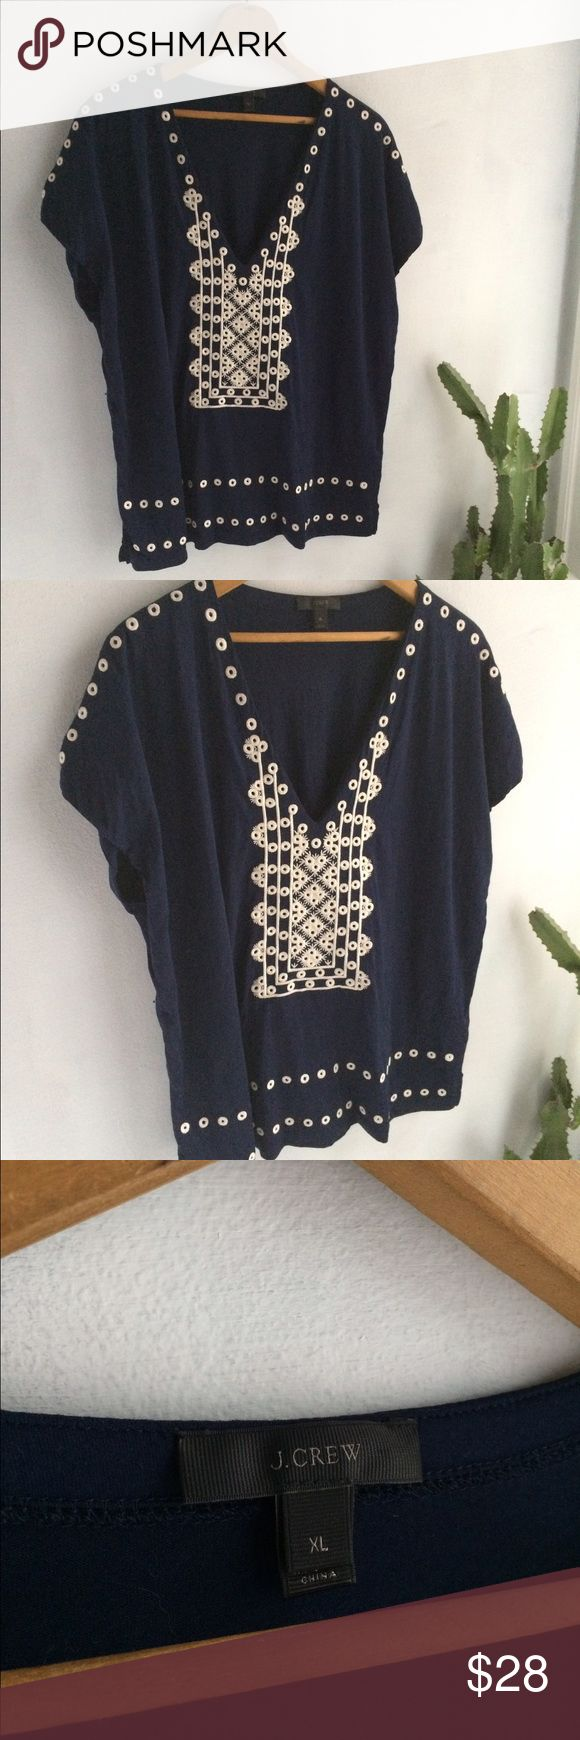 Gorgeous J.Crew top Carefully embroidered navy short sleeve top. In excellent condition. J. Crew Tops Tees - Short Sleeve